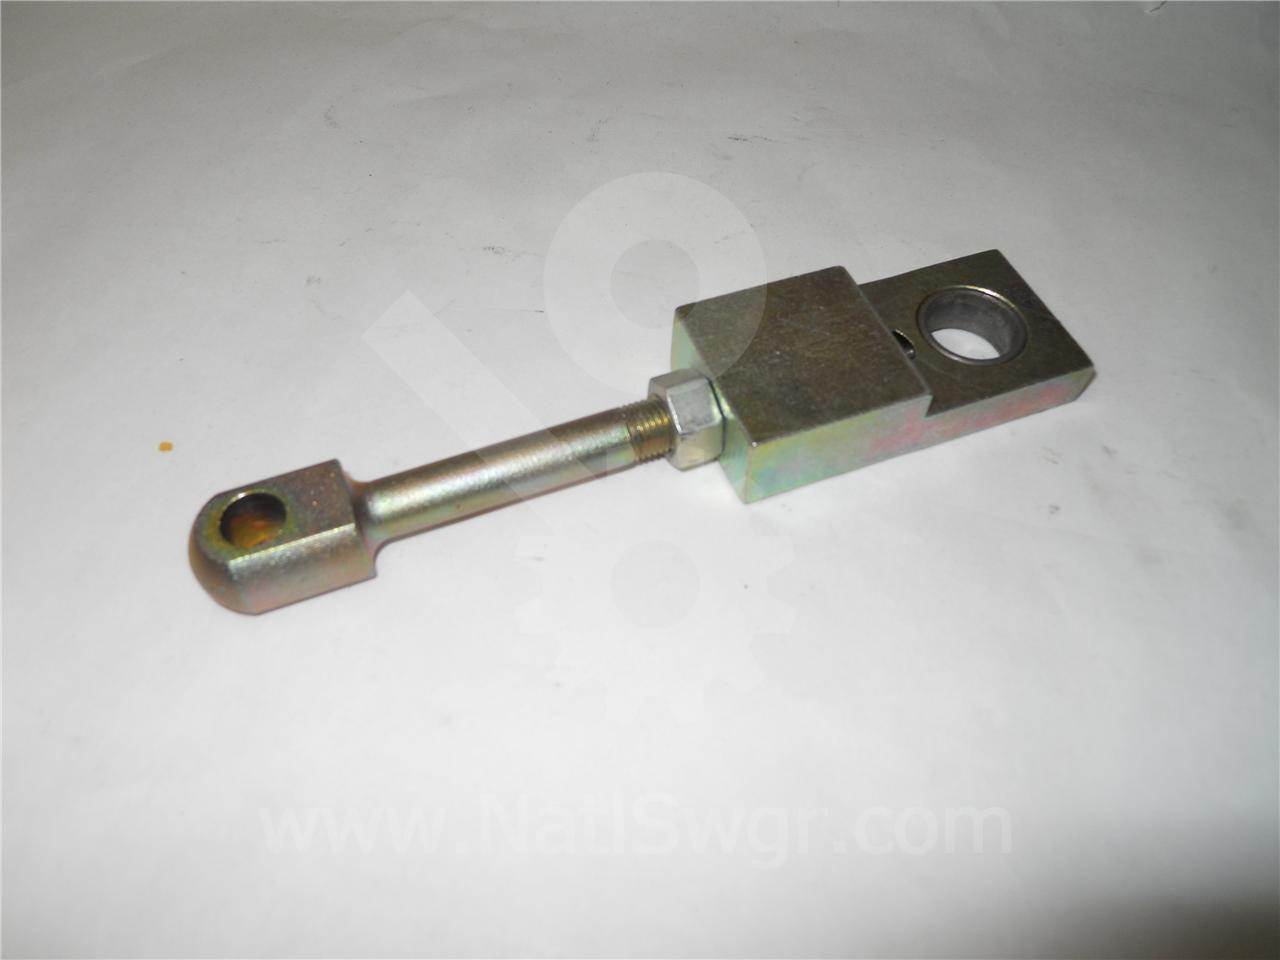 713923-T02 BBC MECHANISM MOTOR LINK FOR LK8 / LK20